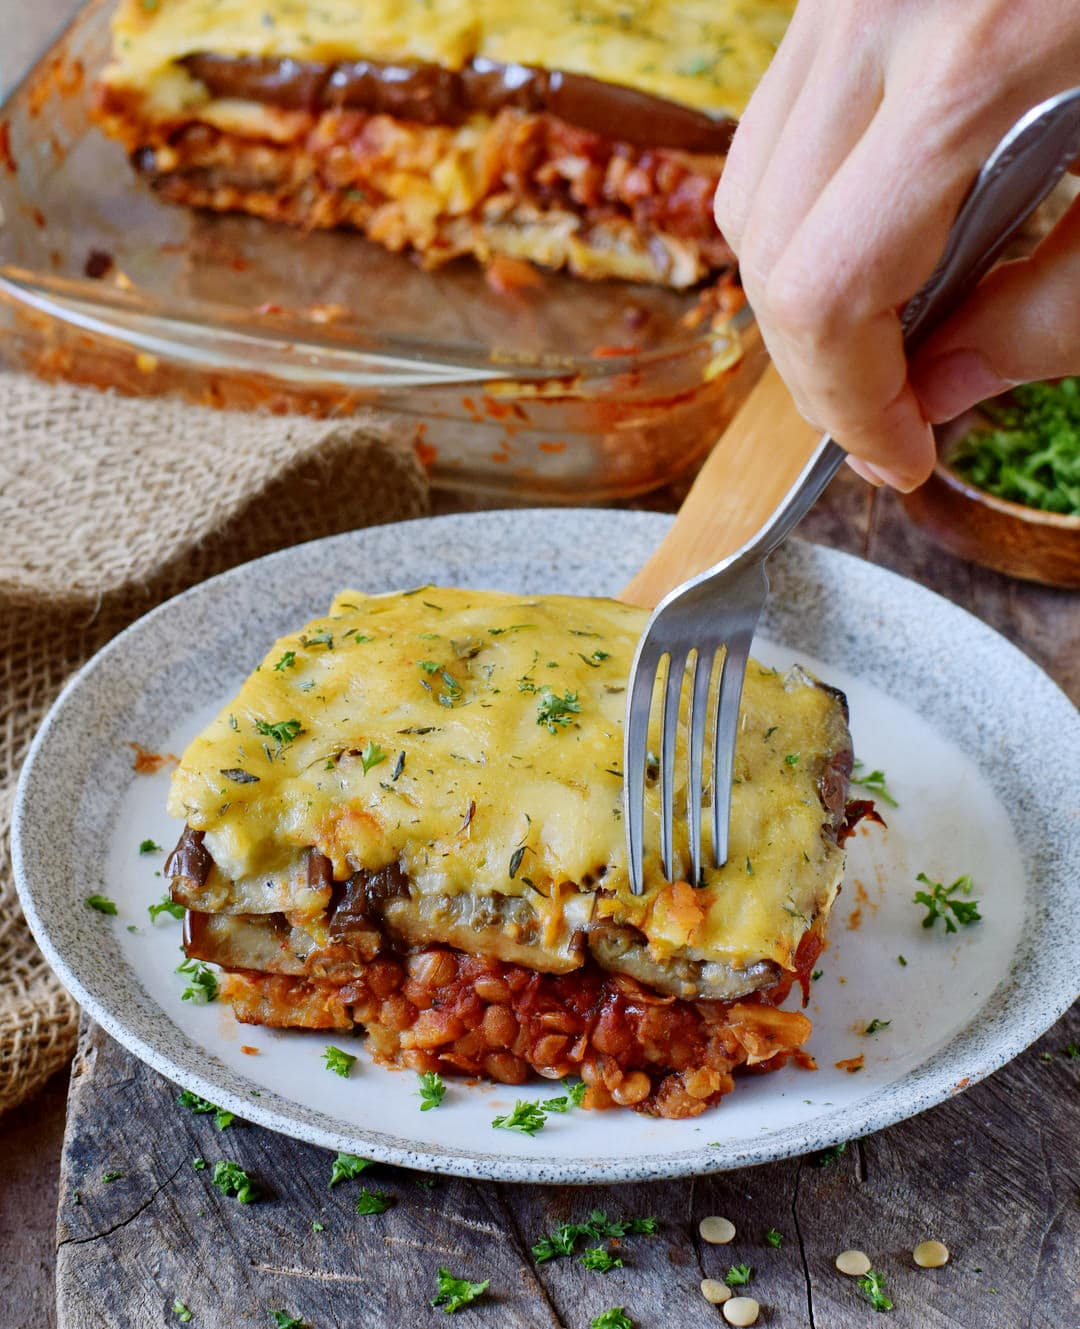 gluten-free vegan moussaka on a plate with a fork